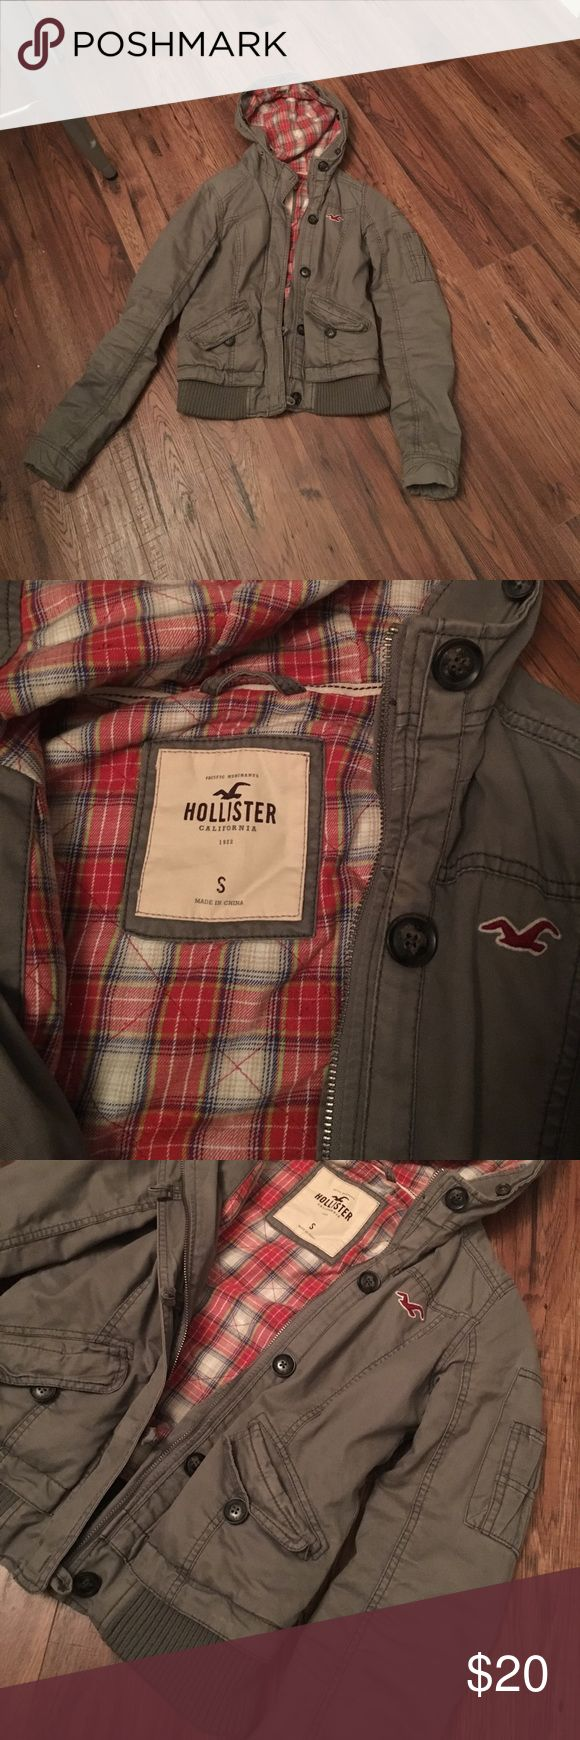 Like new Hollister coat This coat has a hood with removable fur band. It is a light army green color with a red plaid inside. It has two front pockets. All zippers and buttons work. Comes from a pet and smoke free home. Hollister Jackets & Coats